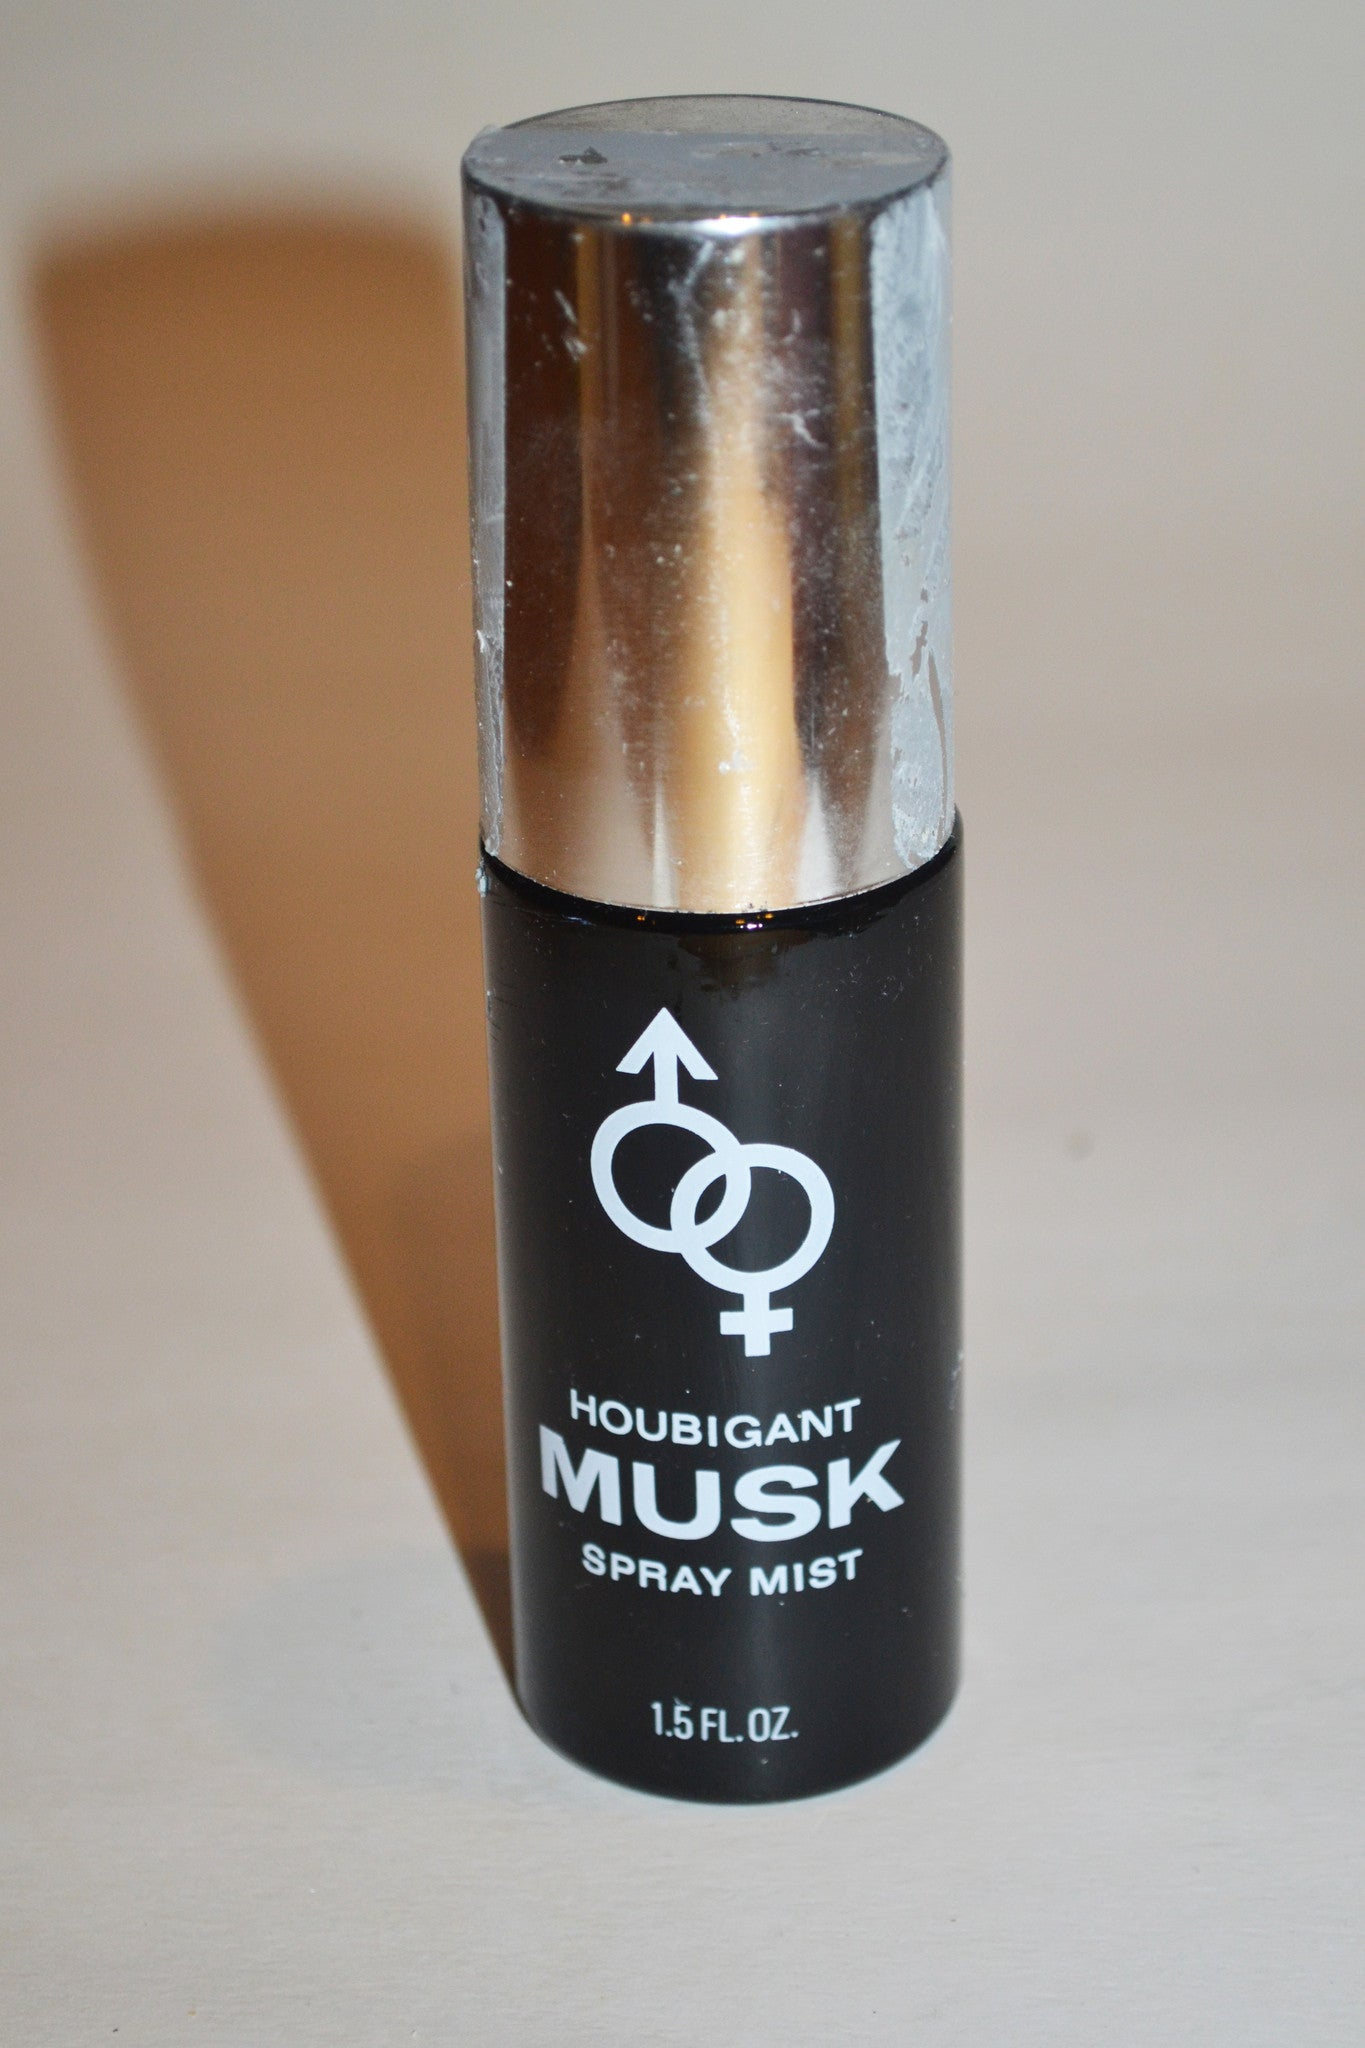 Vintage Musk Spray Mist By Houbigant-Alyssa Ashley